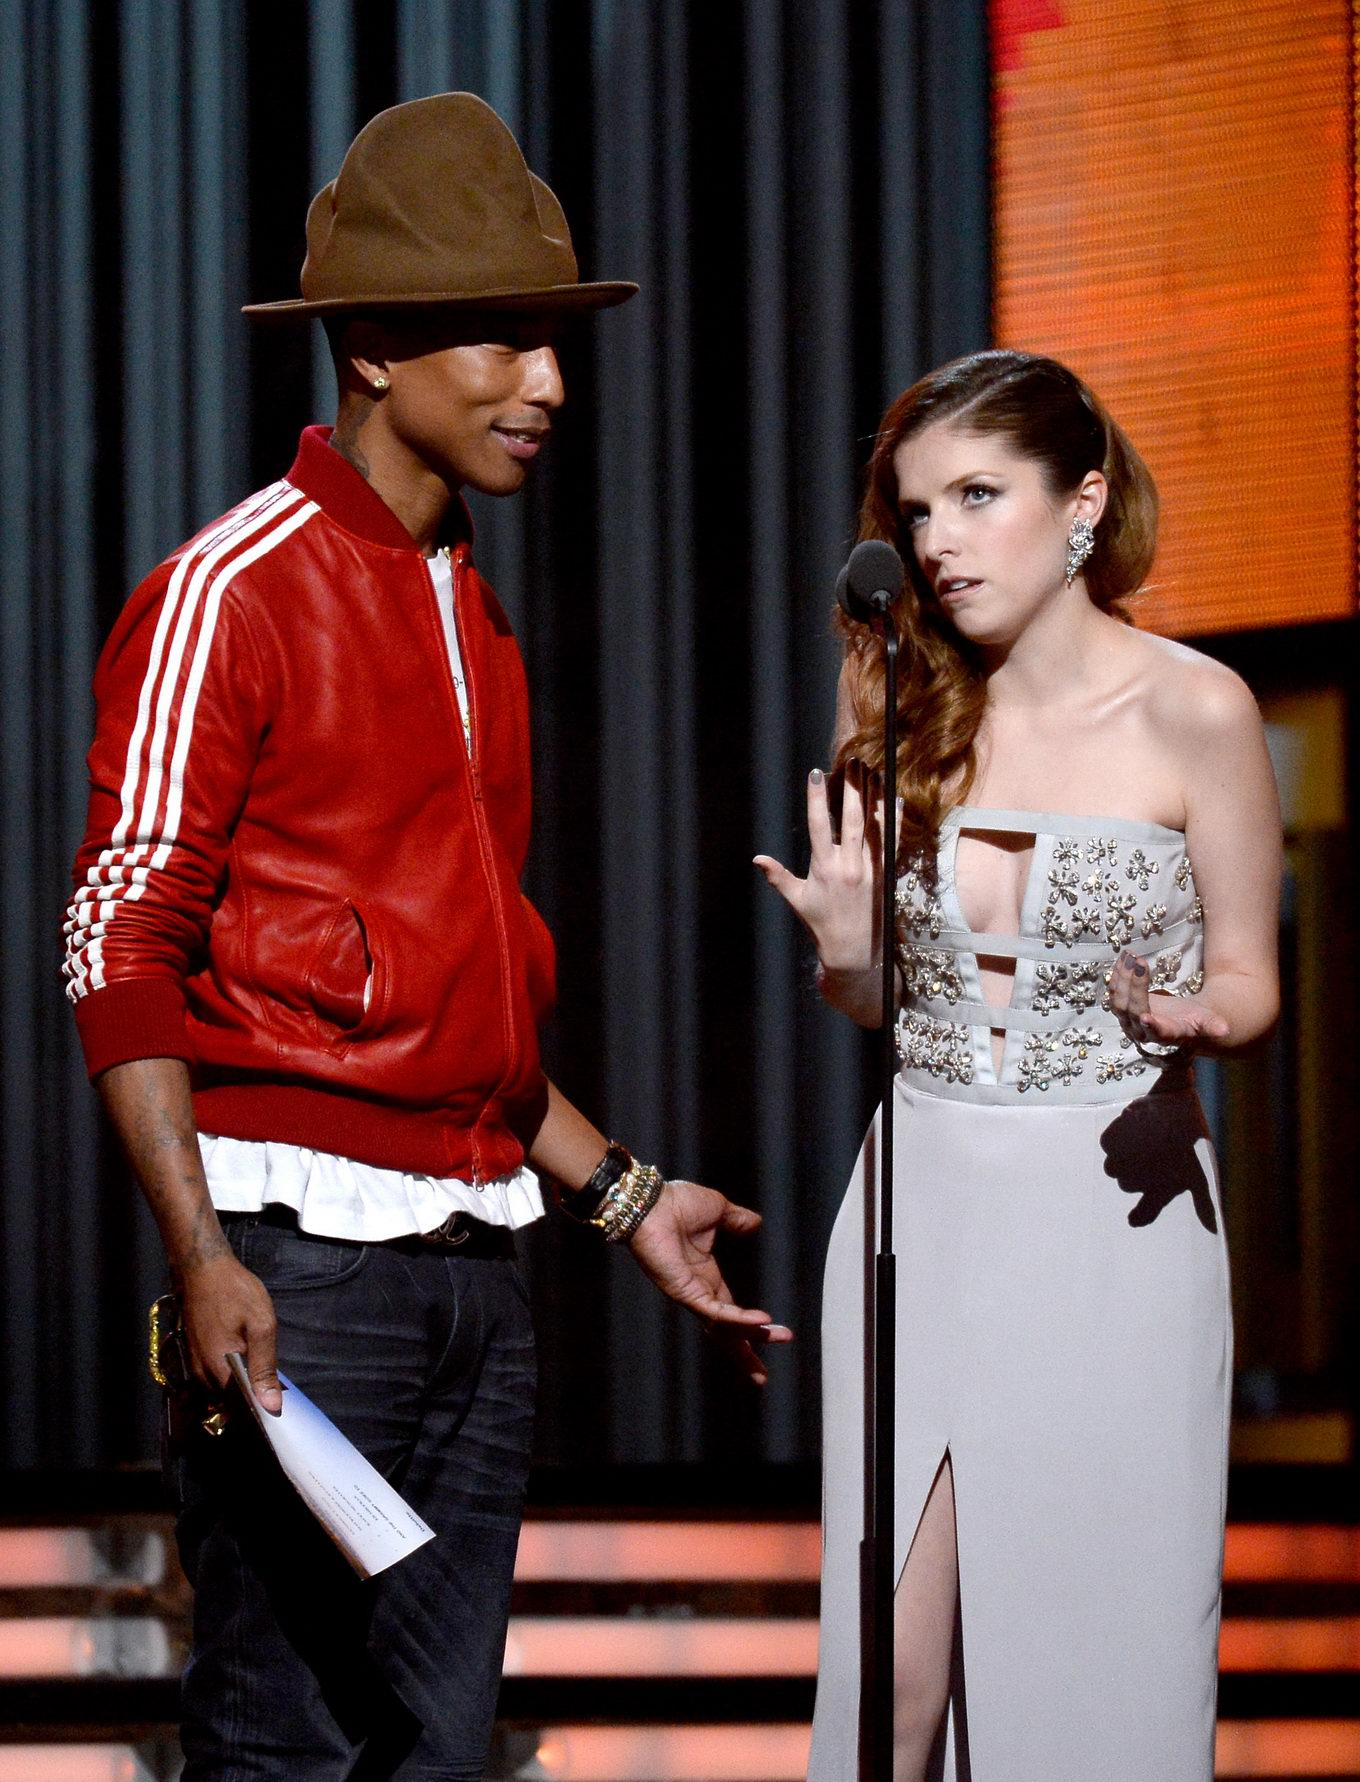 Anna kendrick showing cleavage at the 56th annual grammy awards from